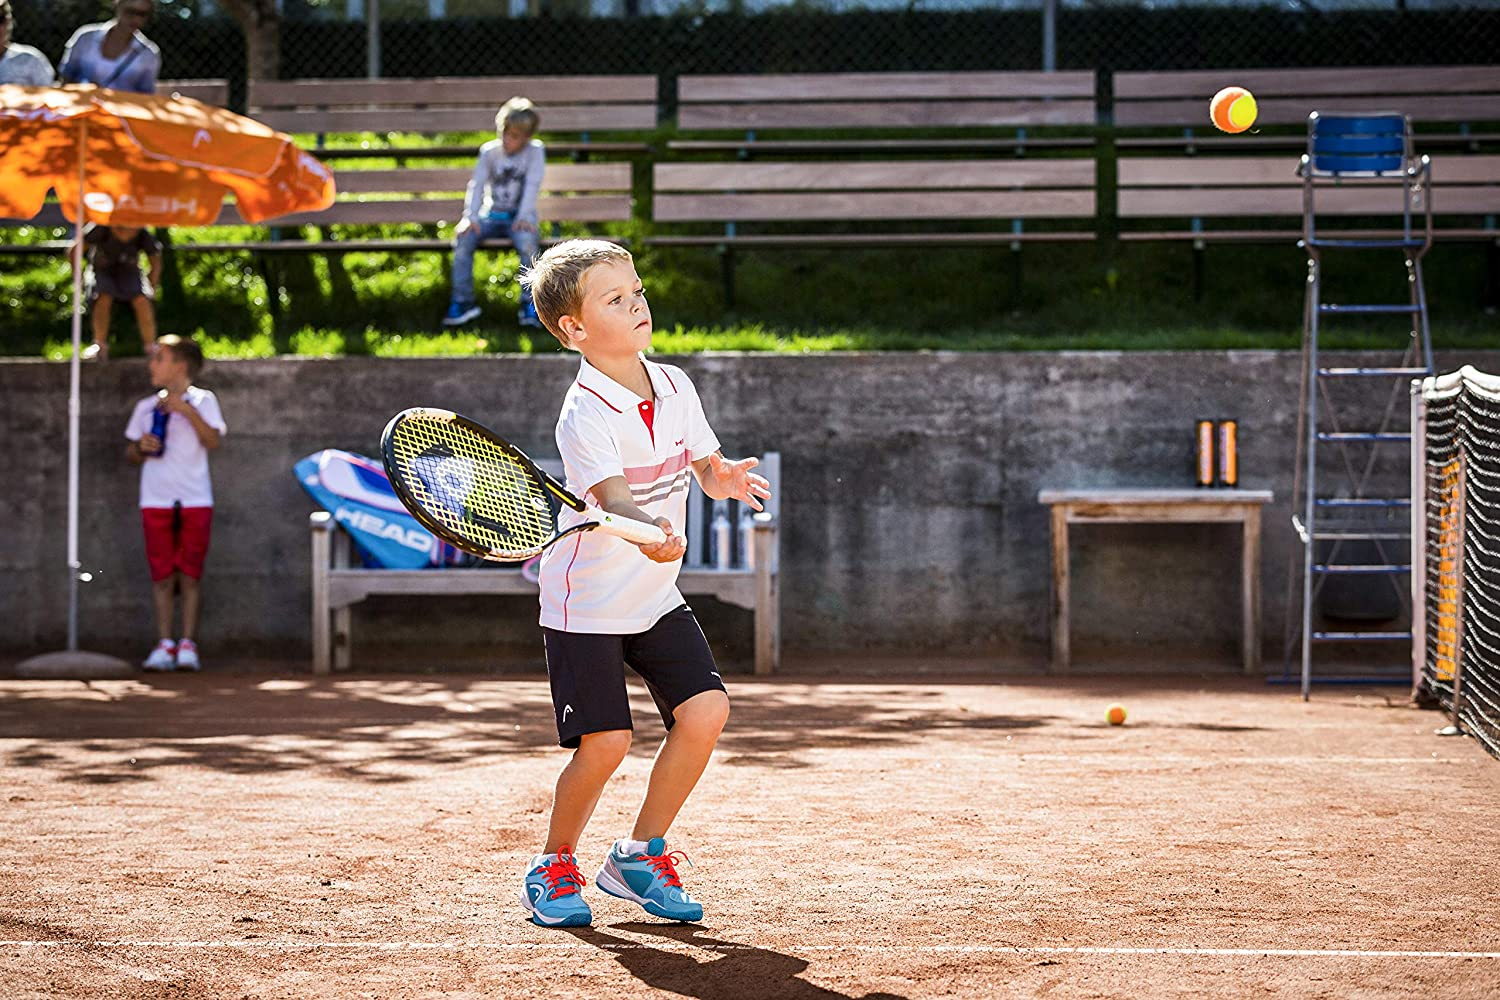 Amazon.com: Speed IG 360 - Raqueta de tenis para niños de ...